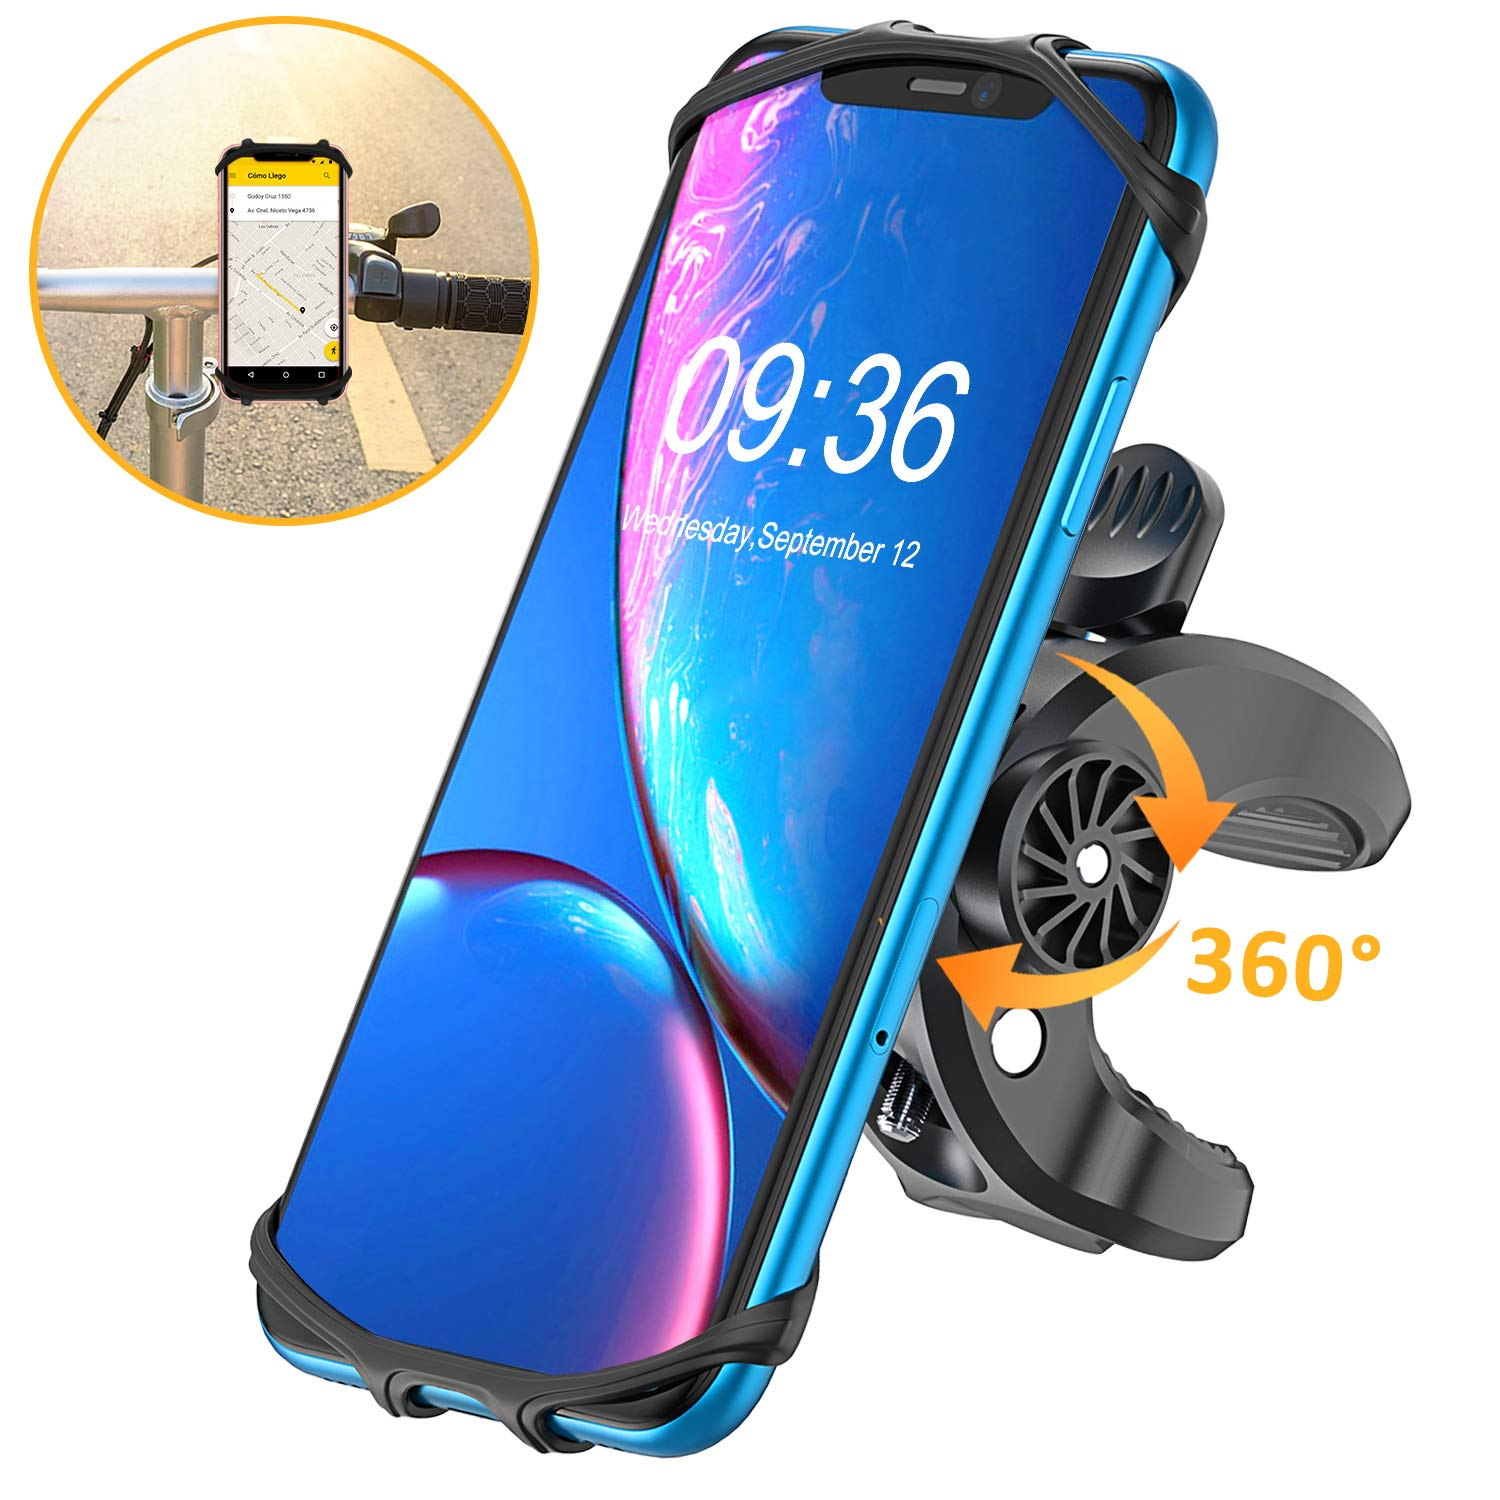 BOVON Bike Phone Mount, (Bolt Design) Sturdy Universal Motorcycle Bicycle Phone Holder Stand for iPhone 11 Pro Max/XS Max/XR/X/XS/8/8 Plus/7/7 Plus, Samsung S10/S10 Plus/S10 e - 360° Rotation